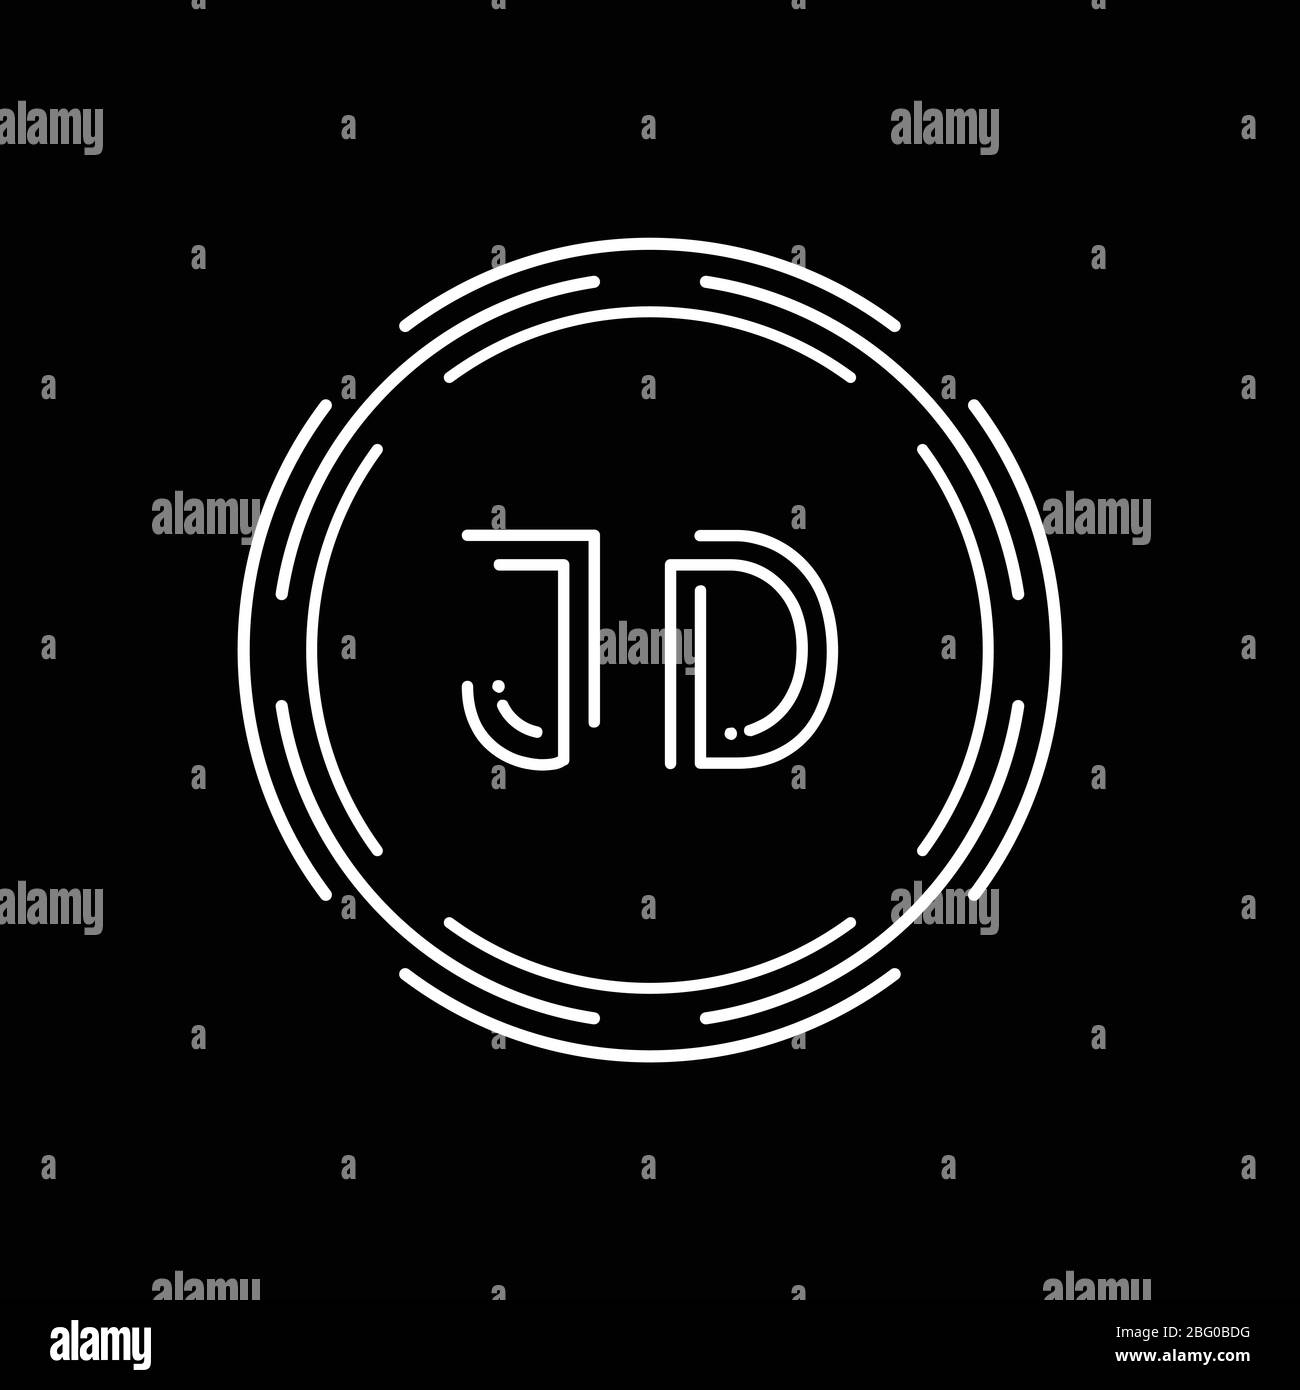 creative letter jd logo design vector template digital linked letter jd logo design stock vector image art alamy alamy